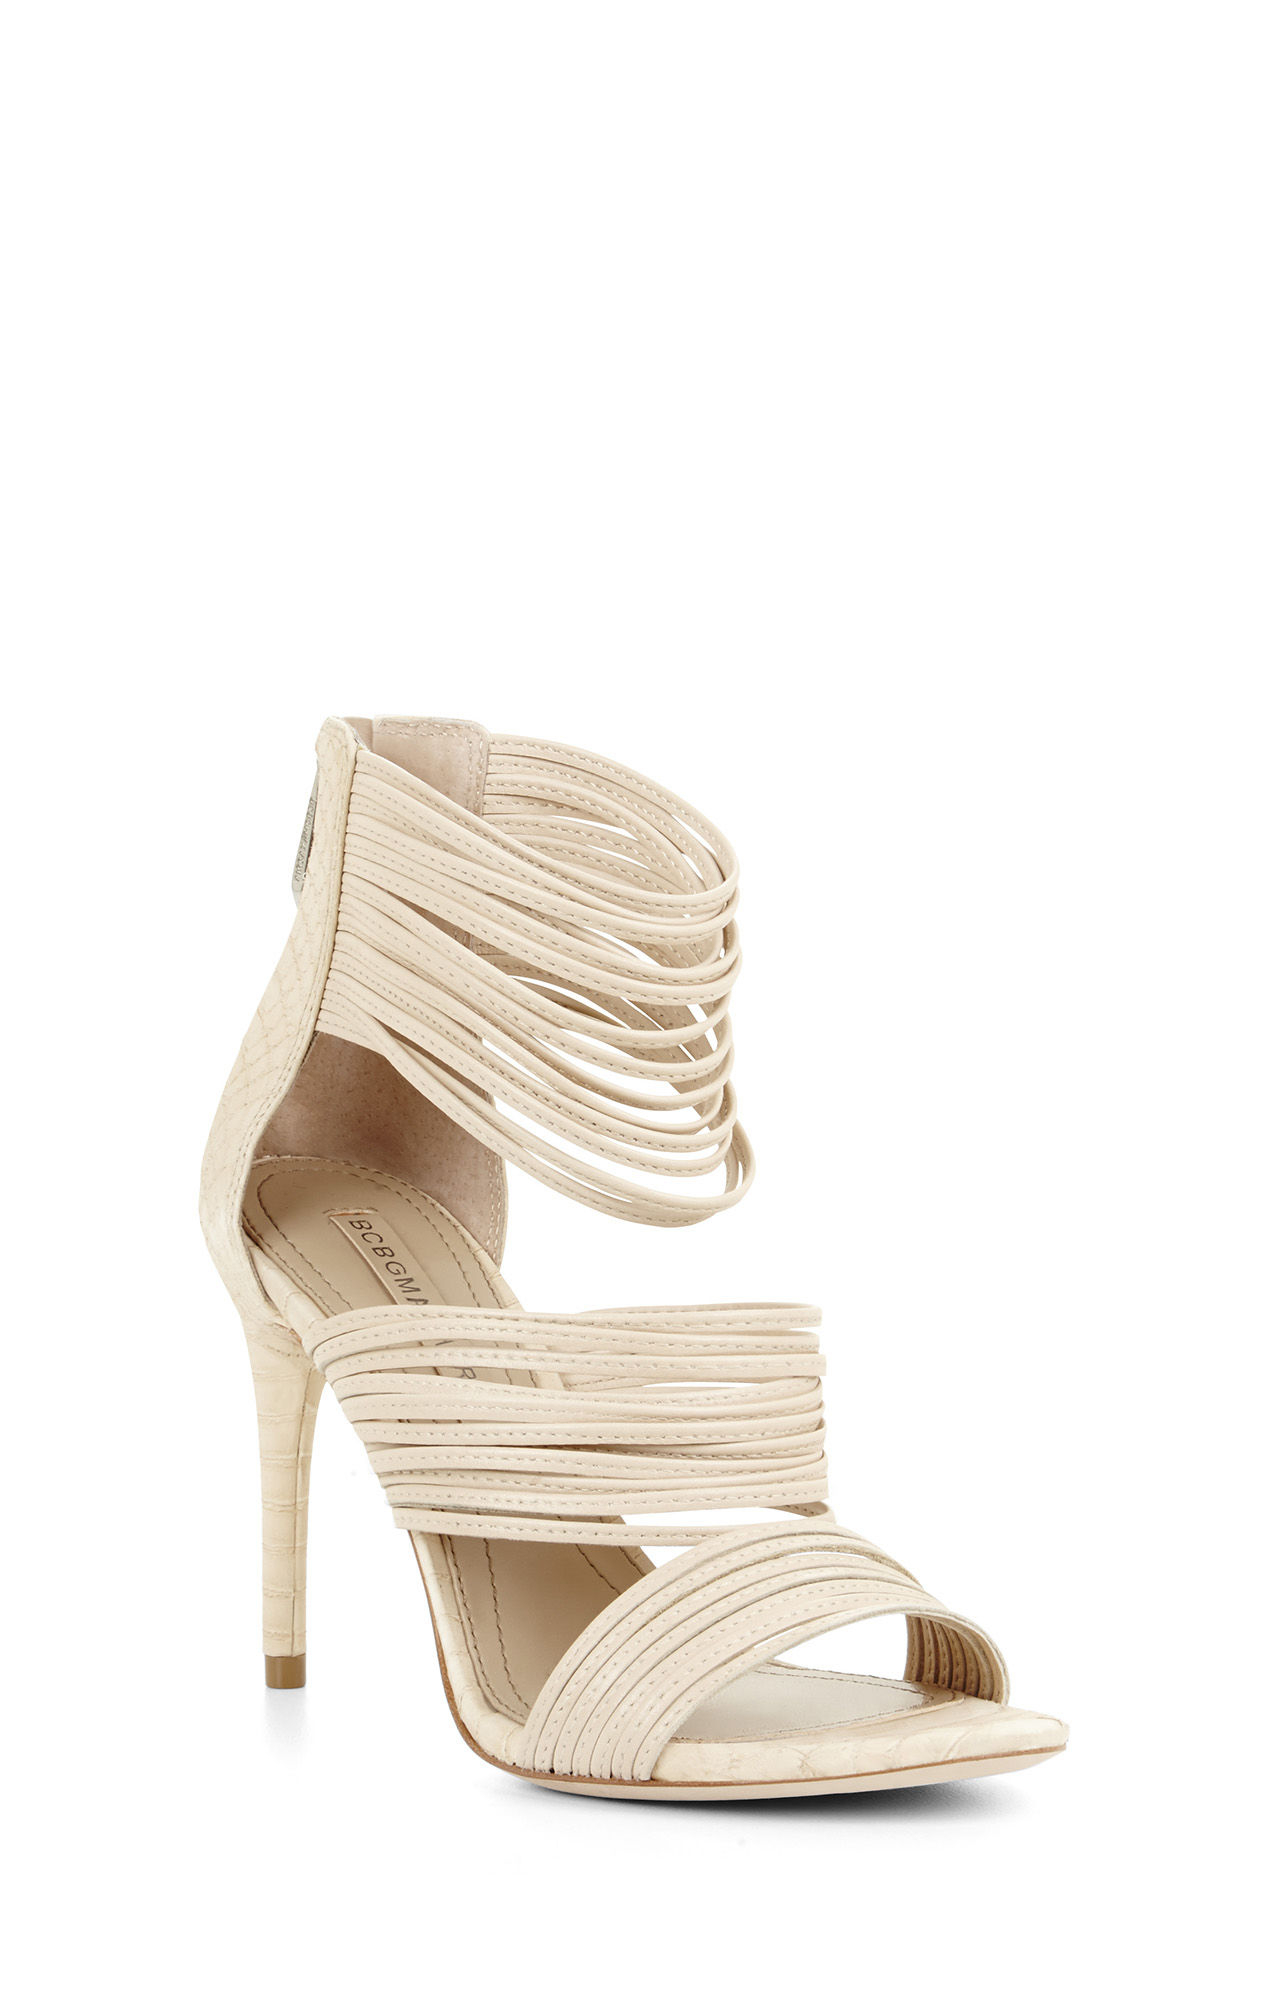 7fb0d1cc4cd Lyst - BCBGMAXAZRIA Pex High-heel Strappy Day Sandal in Natural